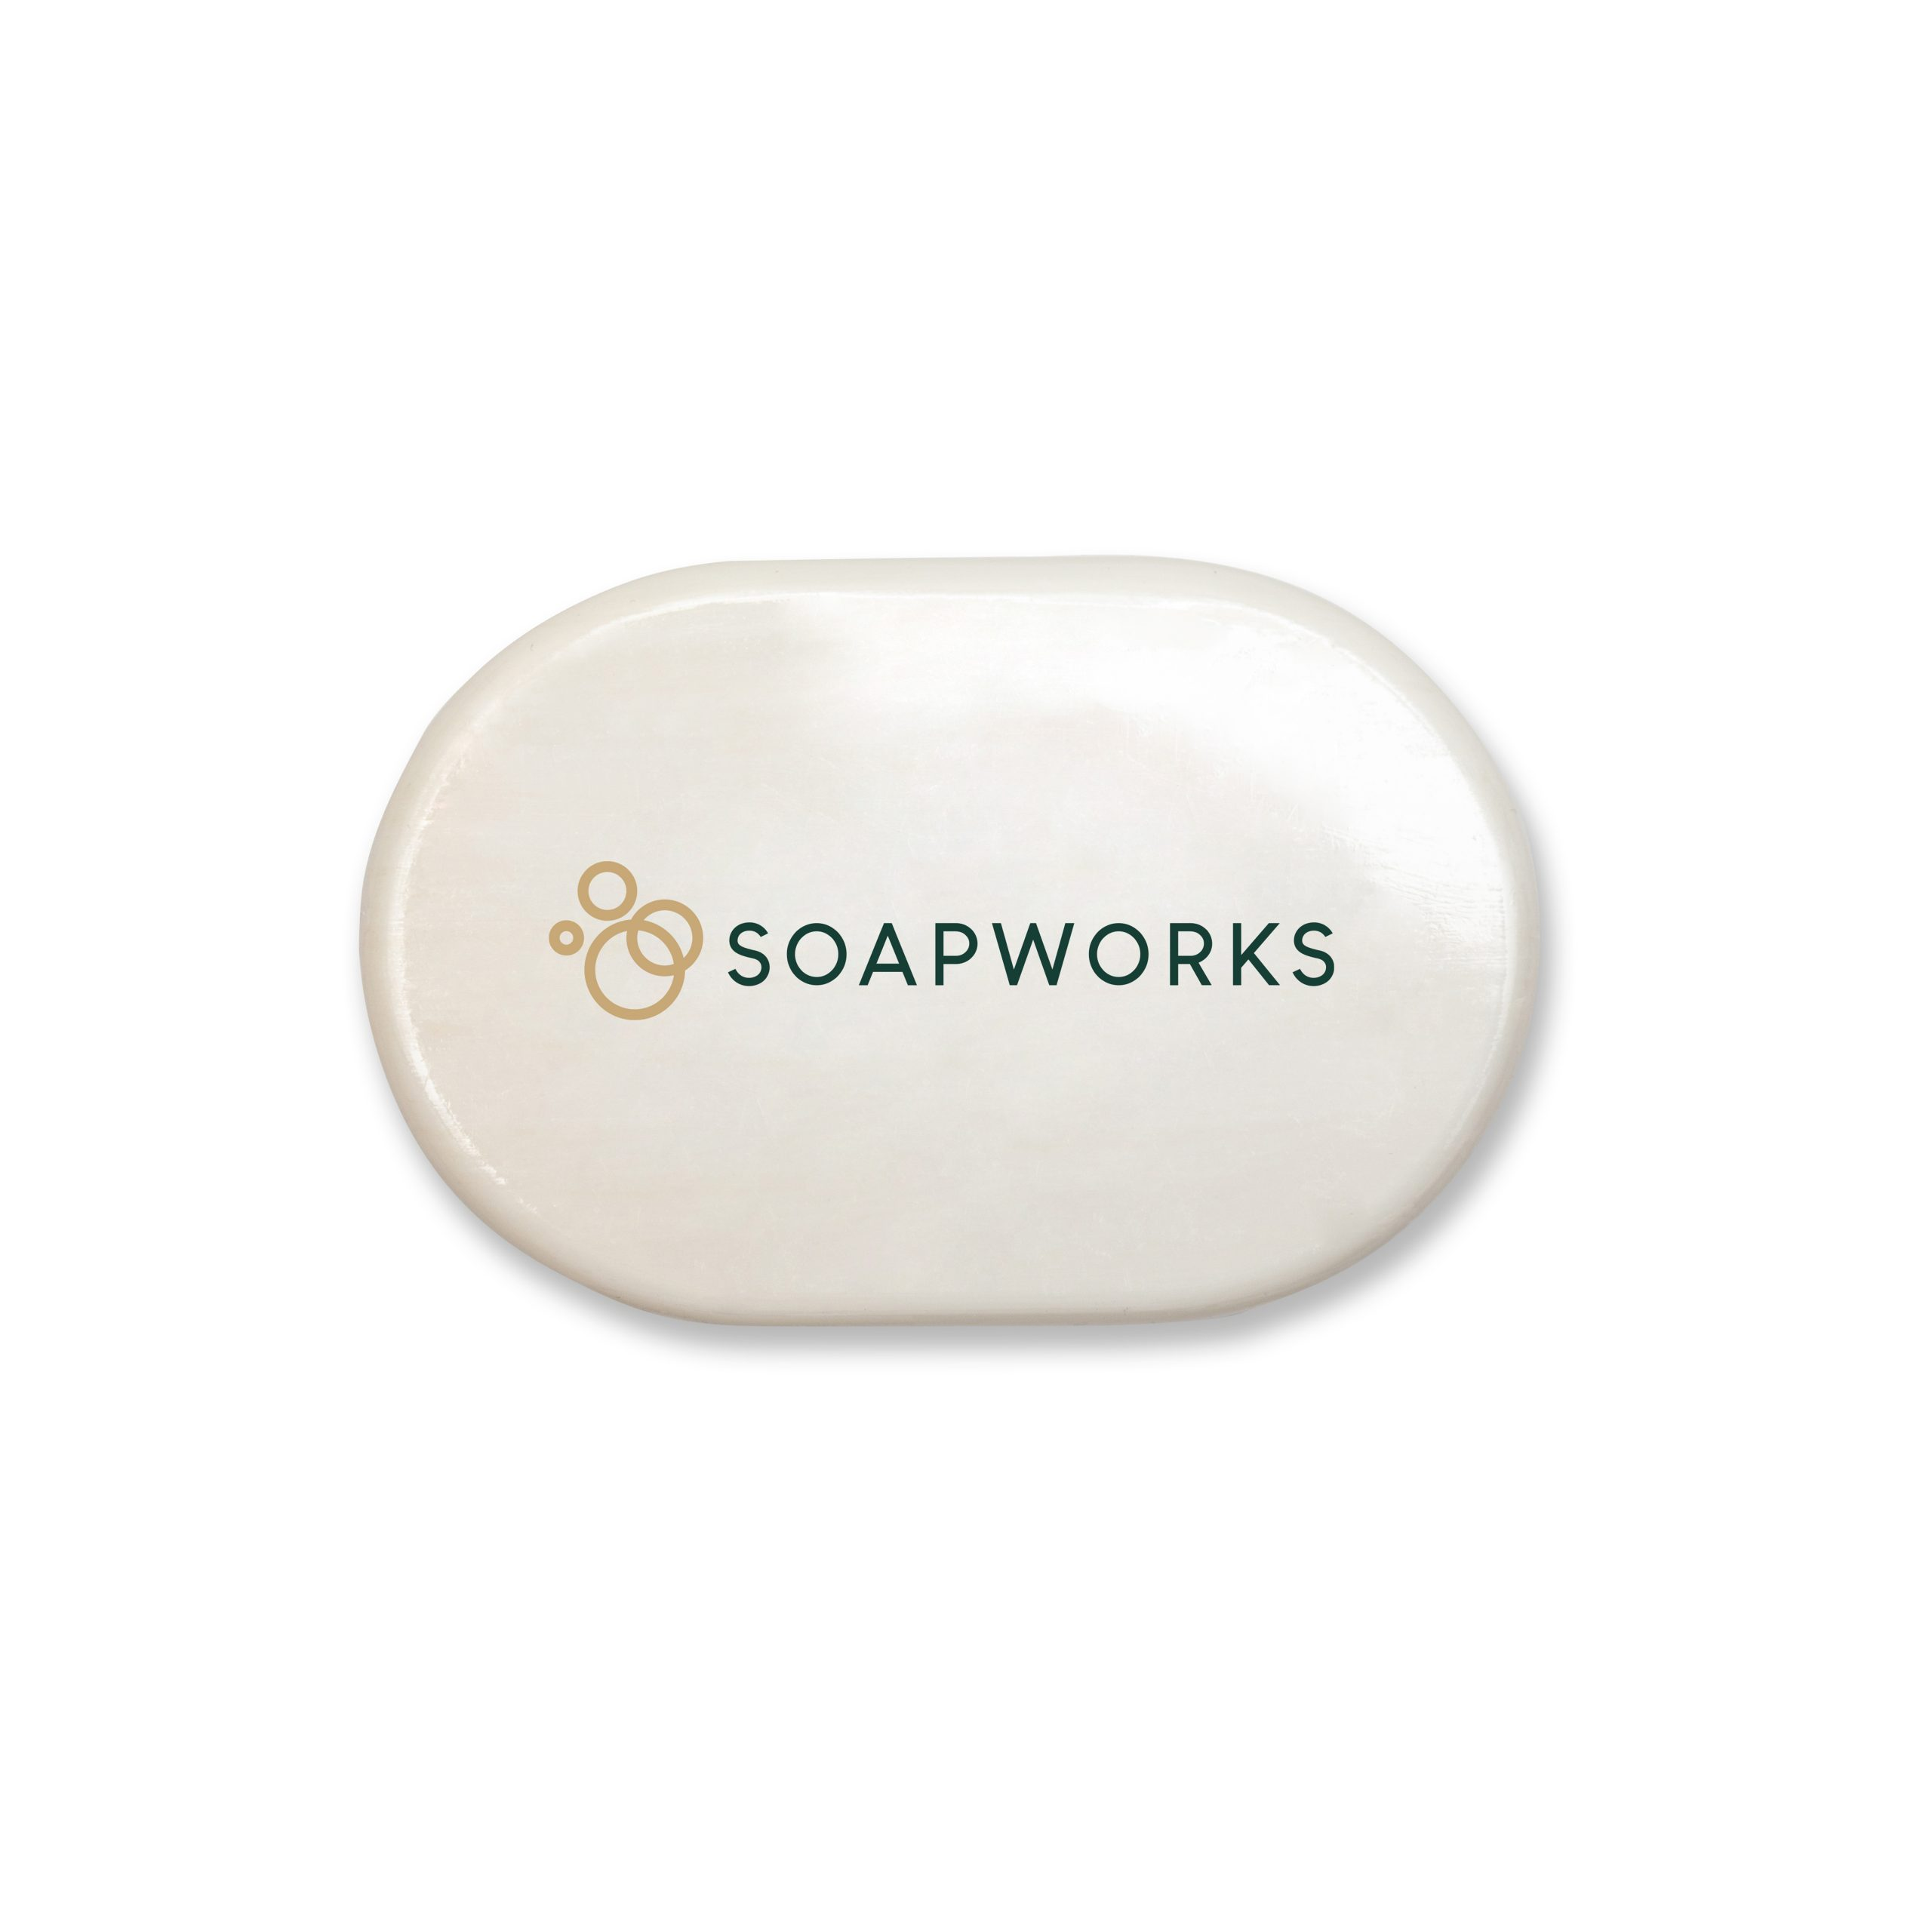 Soapworks branded stretch wrap soap on a white background